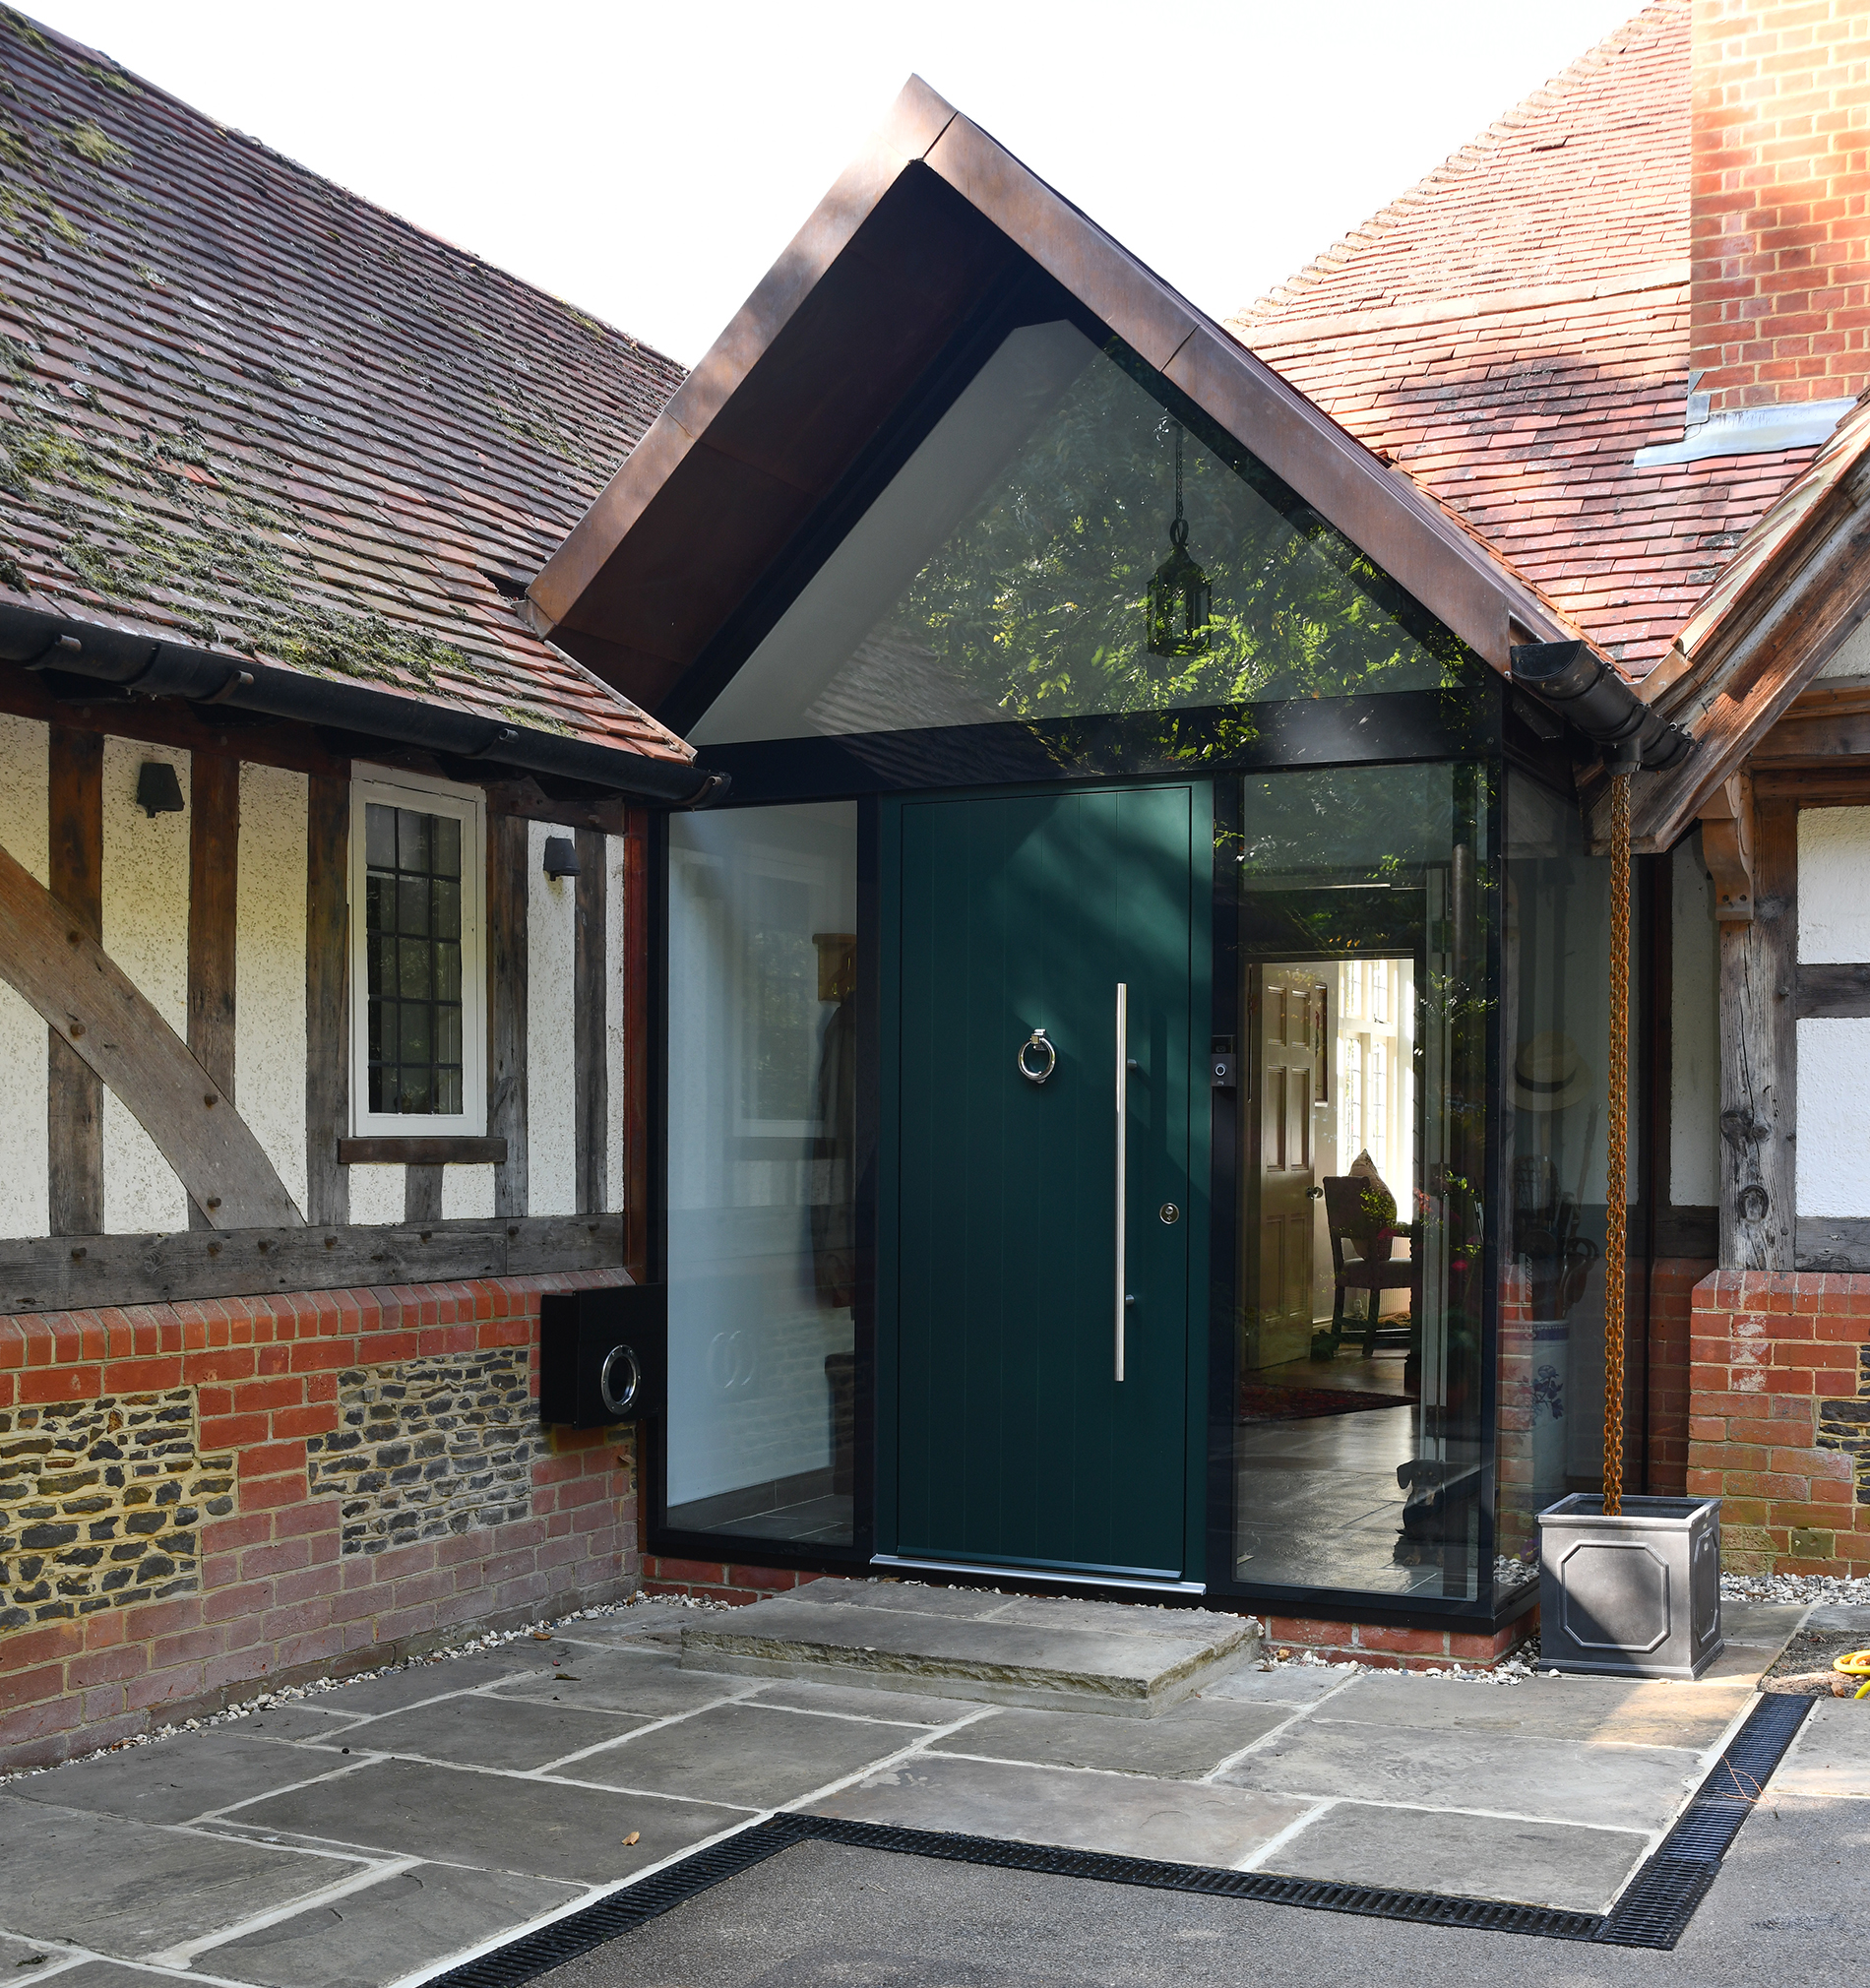 bespoke glazed porch featuring a glazed gable from Exact Architectural Glazing